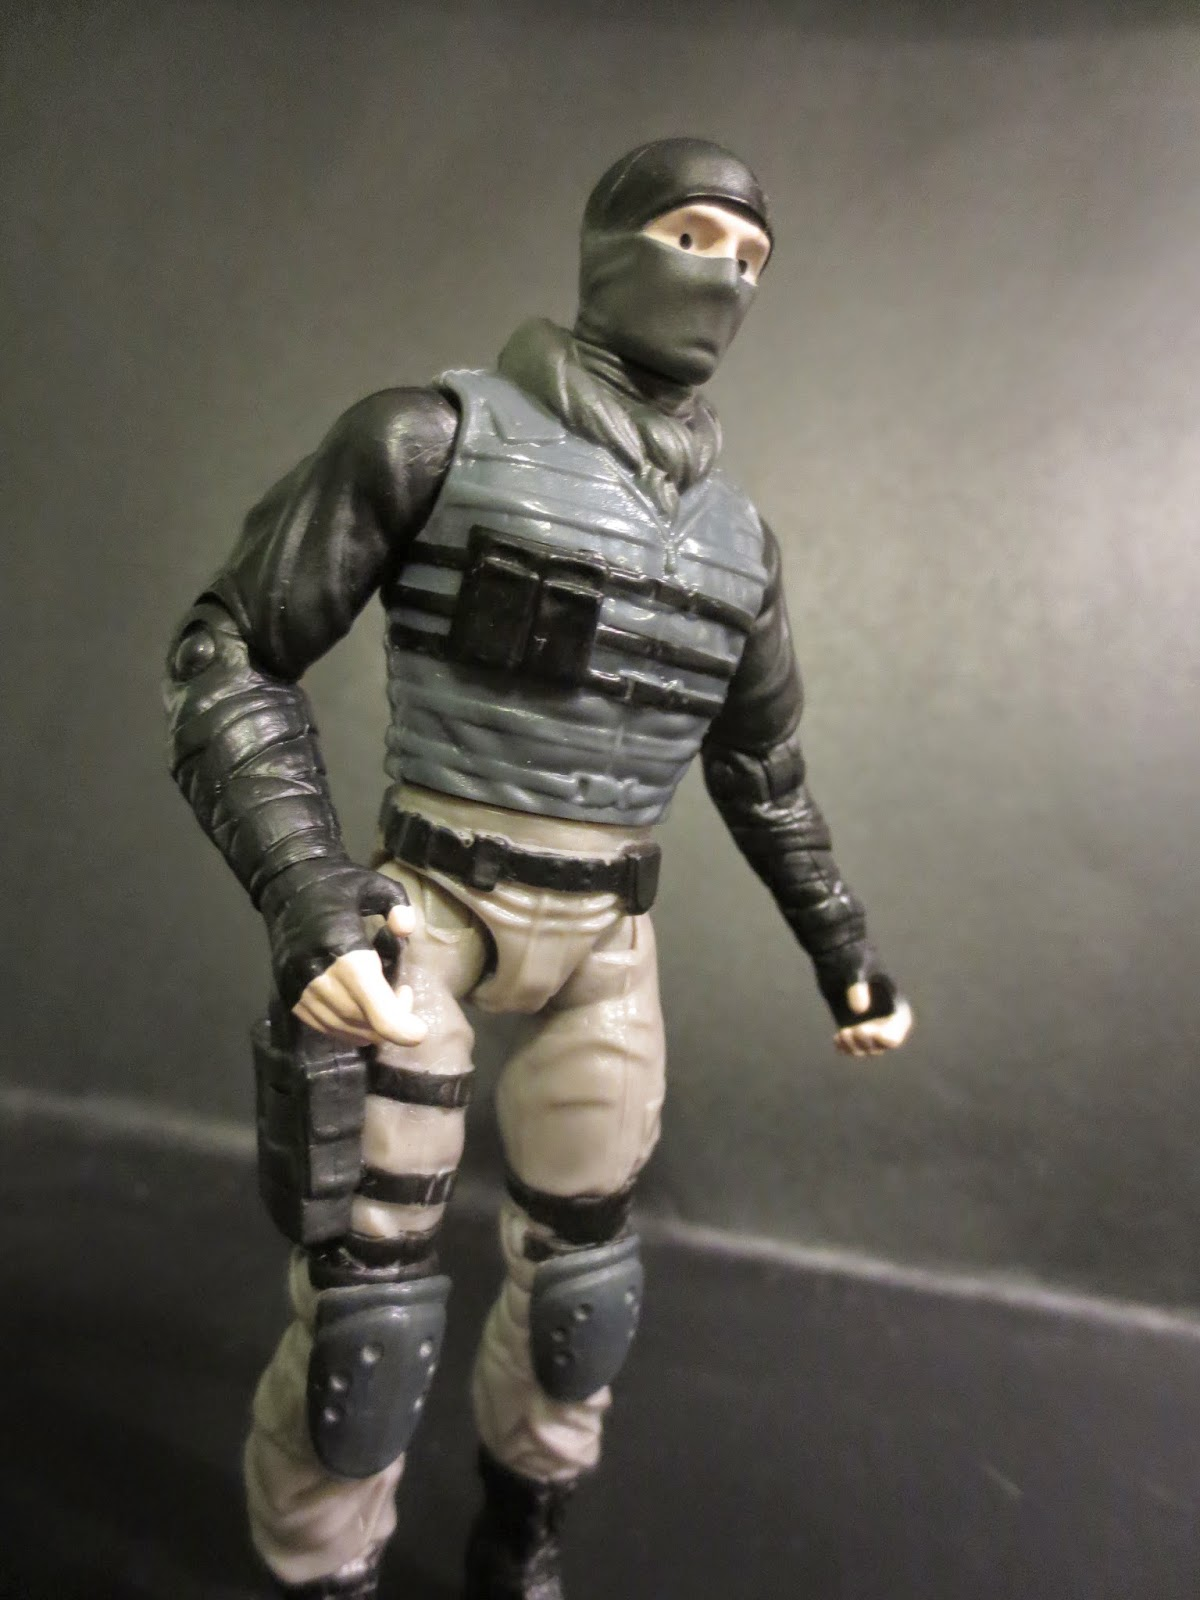 Action figure barbecue action figure review foot soldier for Foot soldier